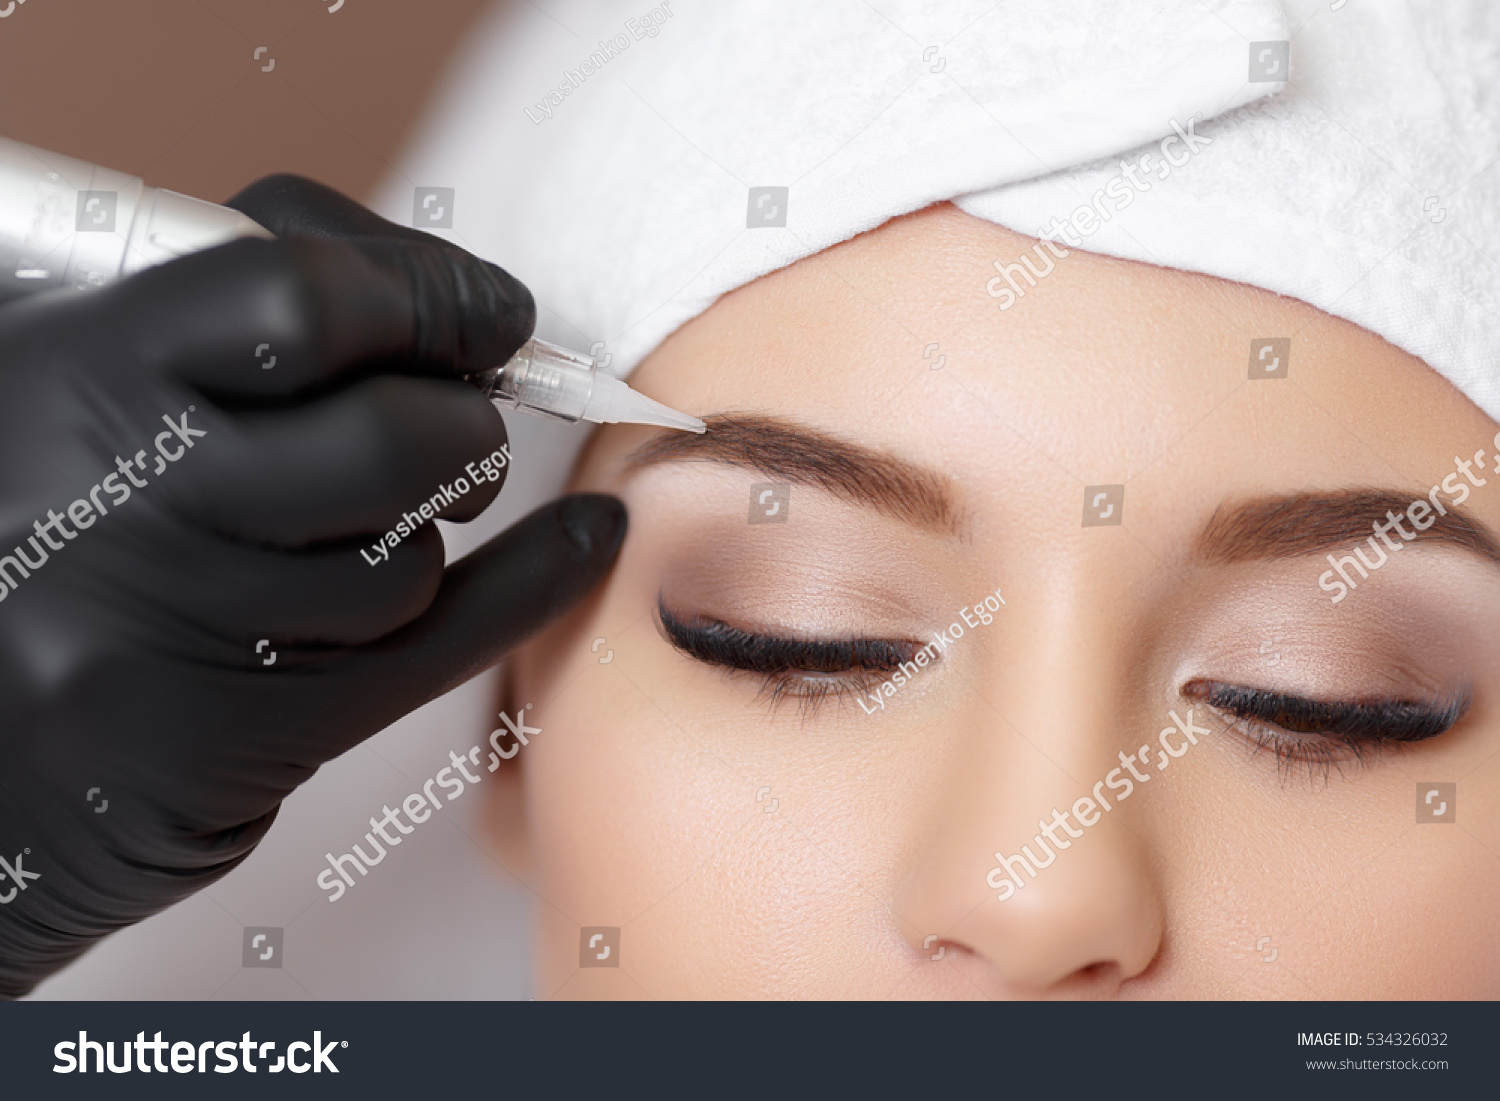 Permanent Makeup Permanent Tattooing Eyebrows Cosmetologist Foto De